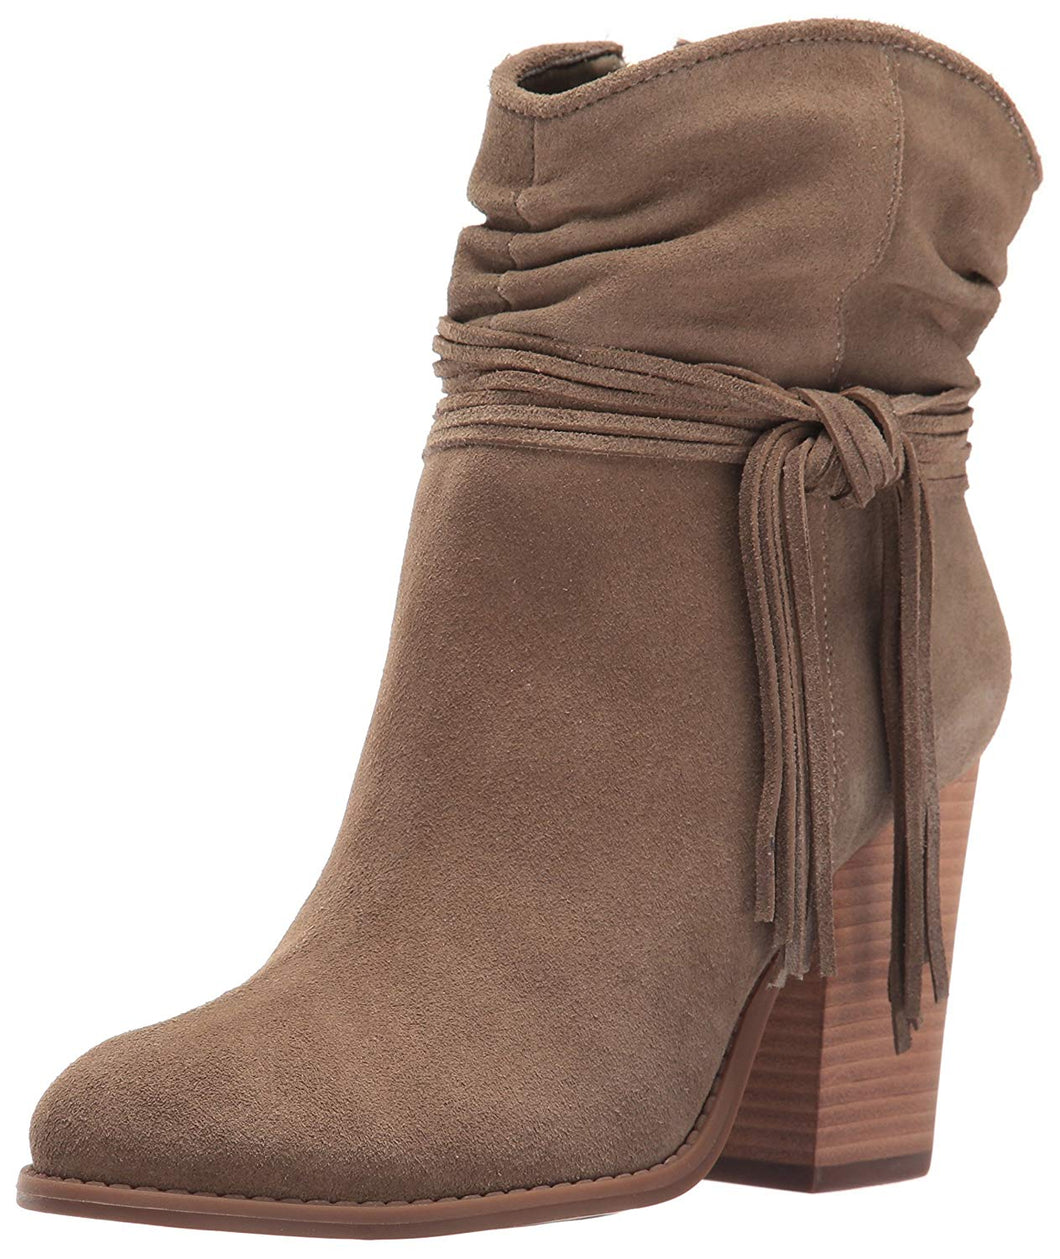 Jessica Simpson Women's Sesley Ankle Bootie